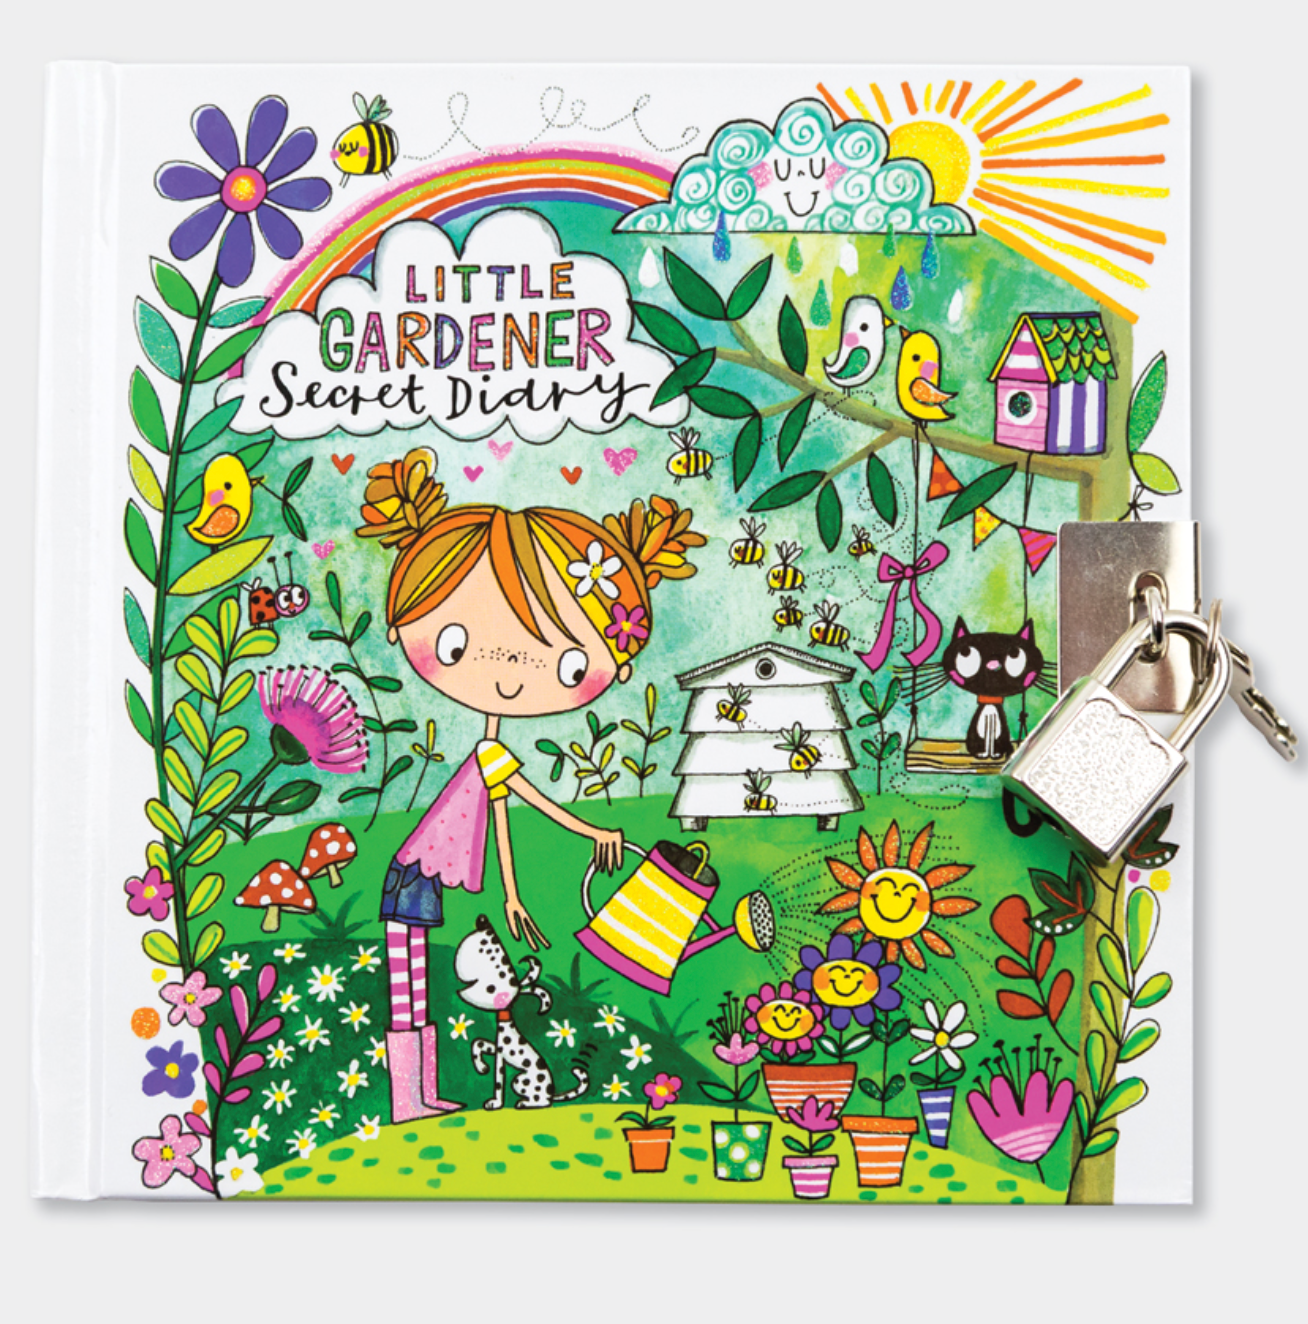 Rachel ellen secret diary - little gardner